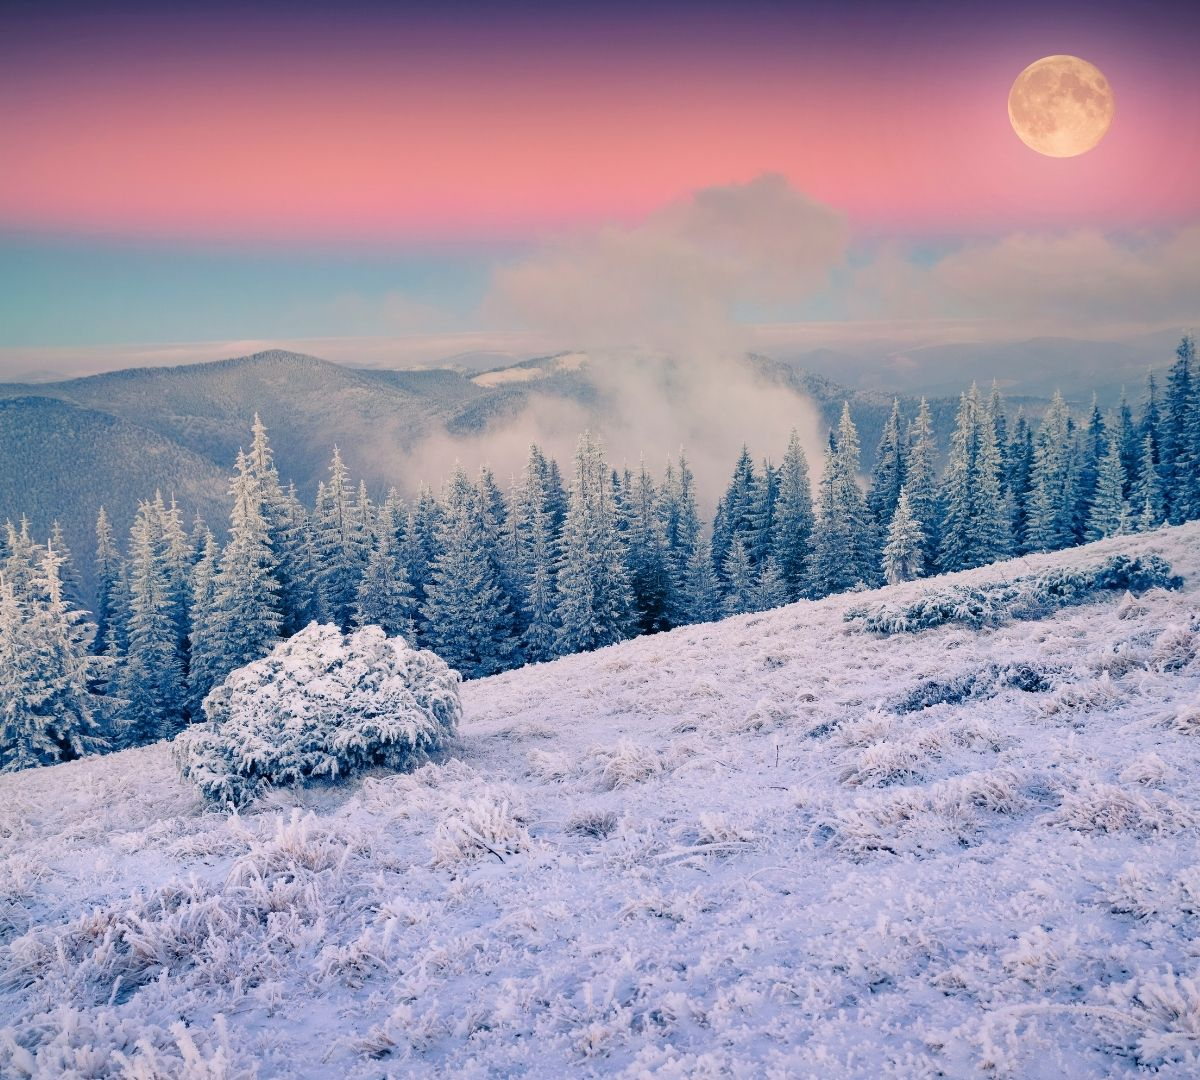 Full Moon with pink and blue sky and a frosty mountain scene